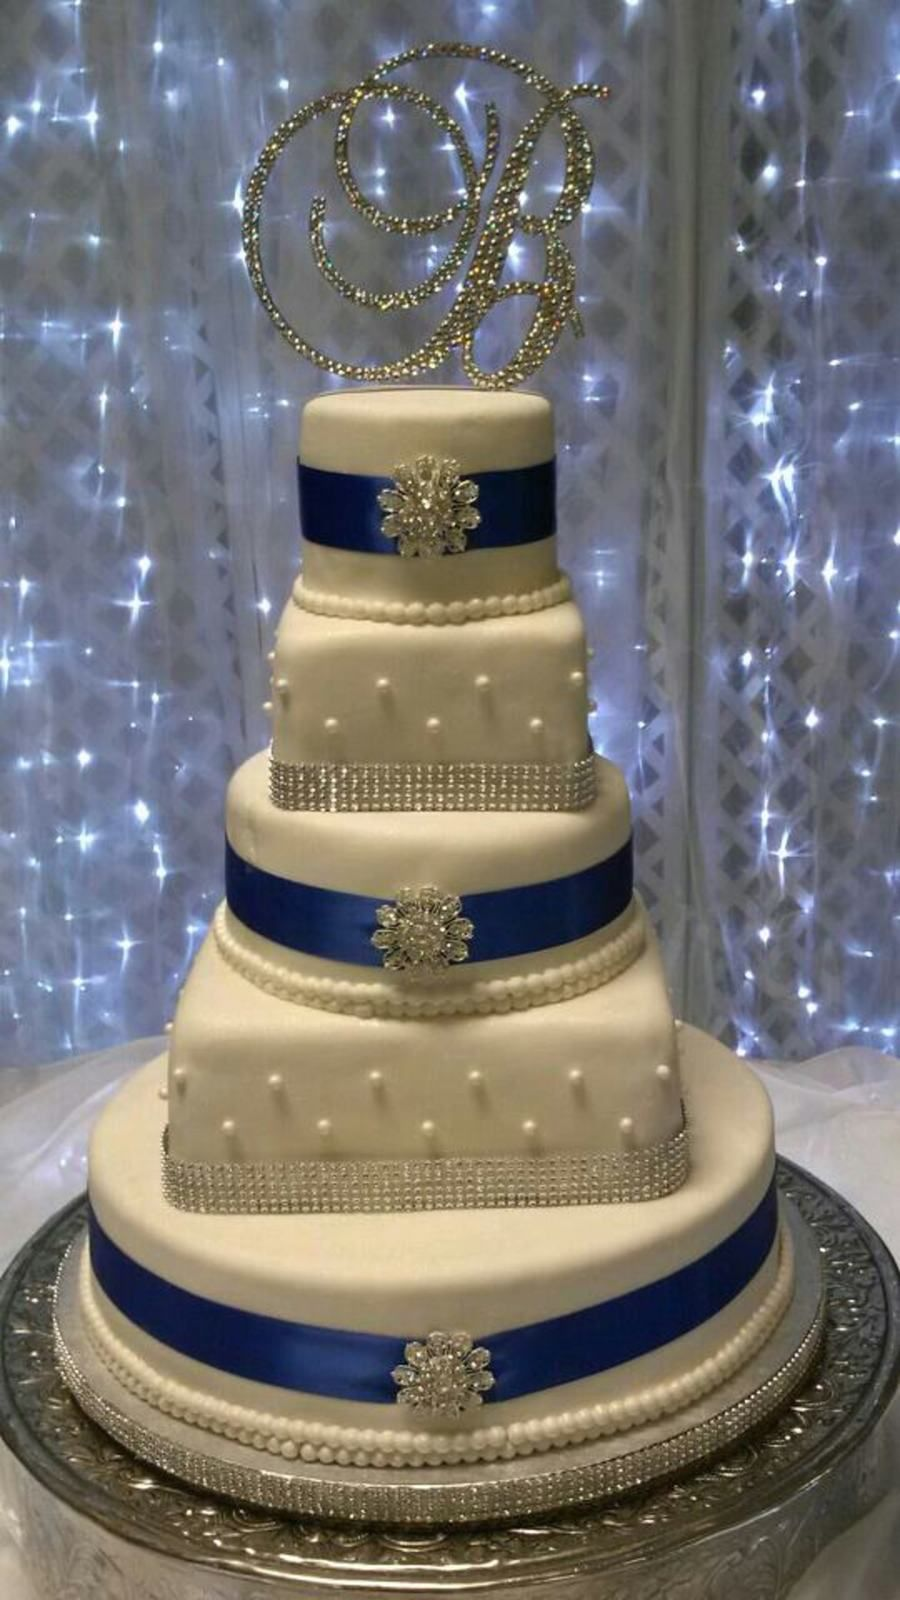 My nieces wedding cake biggest cake ive ever done and only the nd